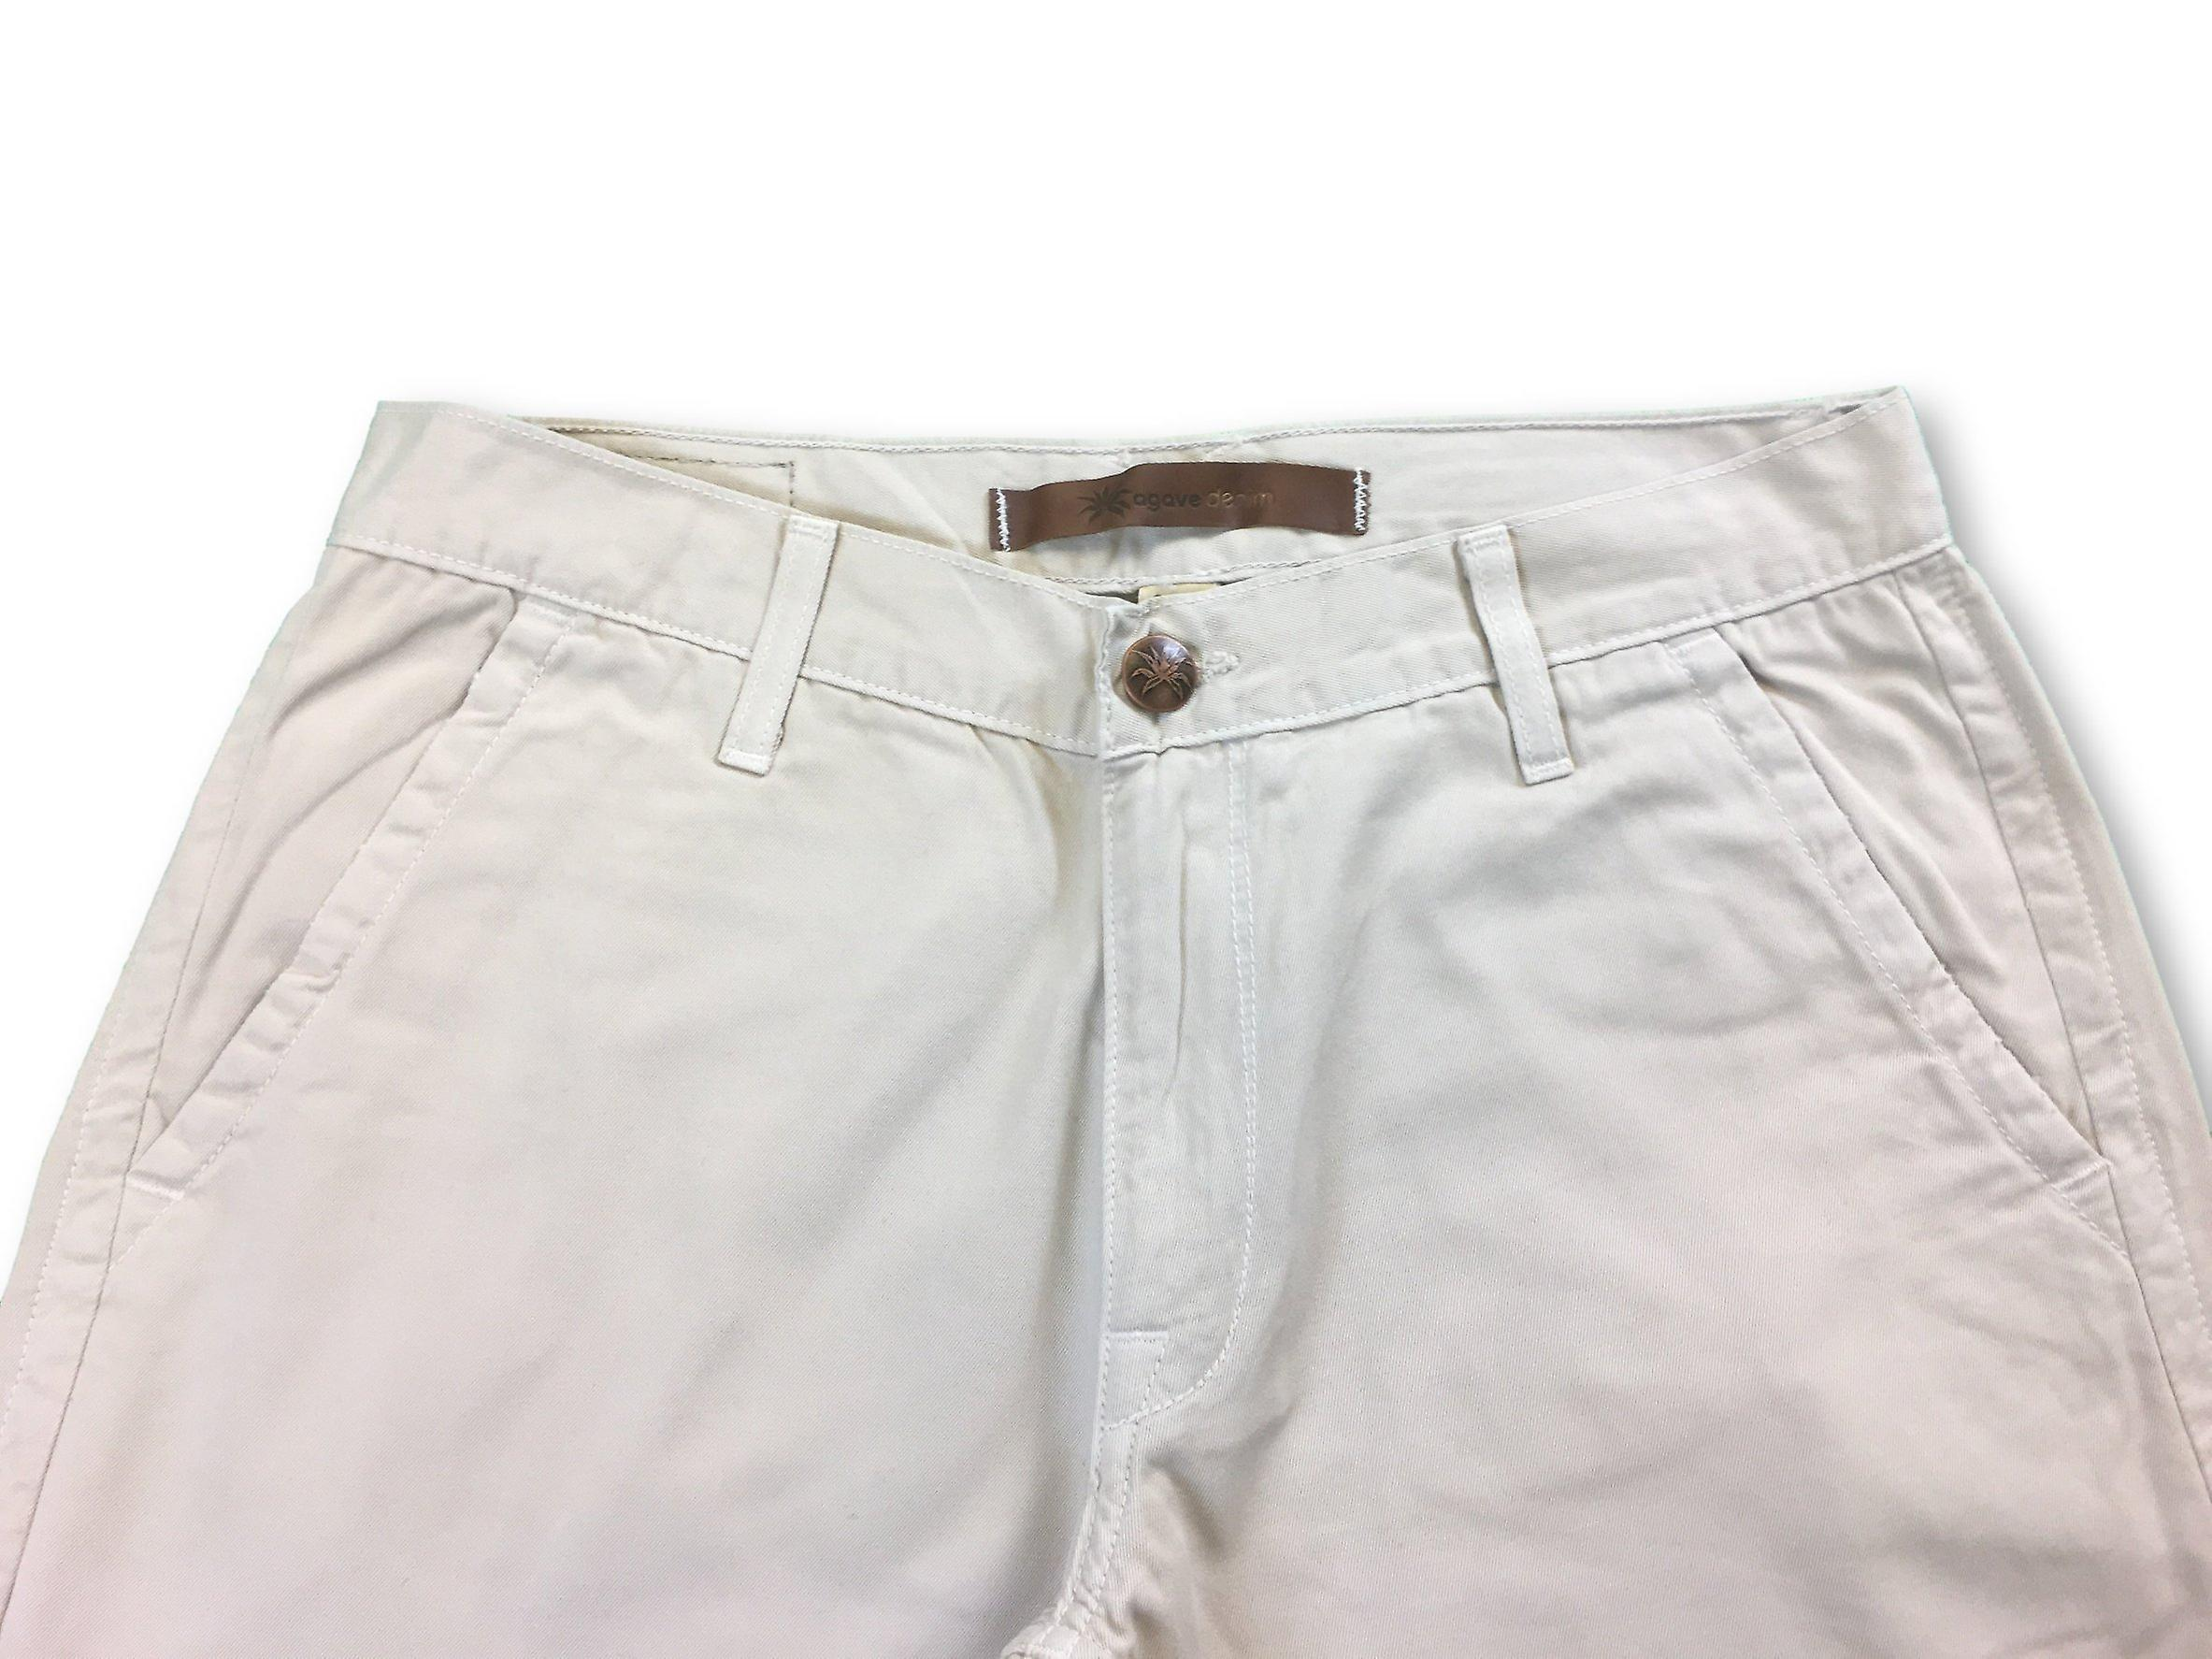 Agave Copper chinos in stone